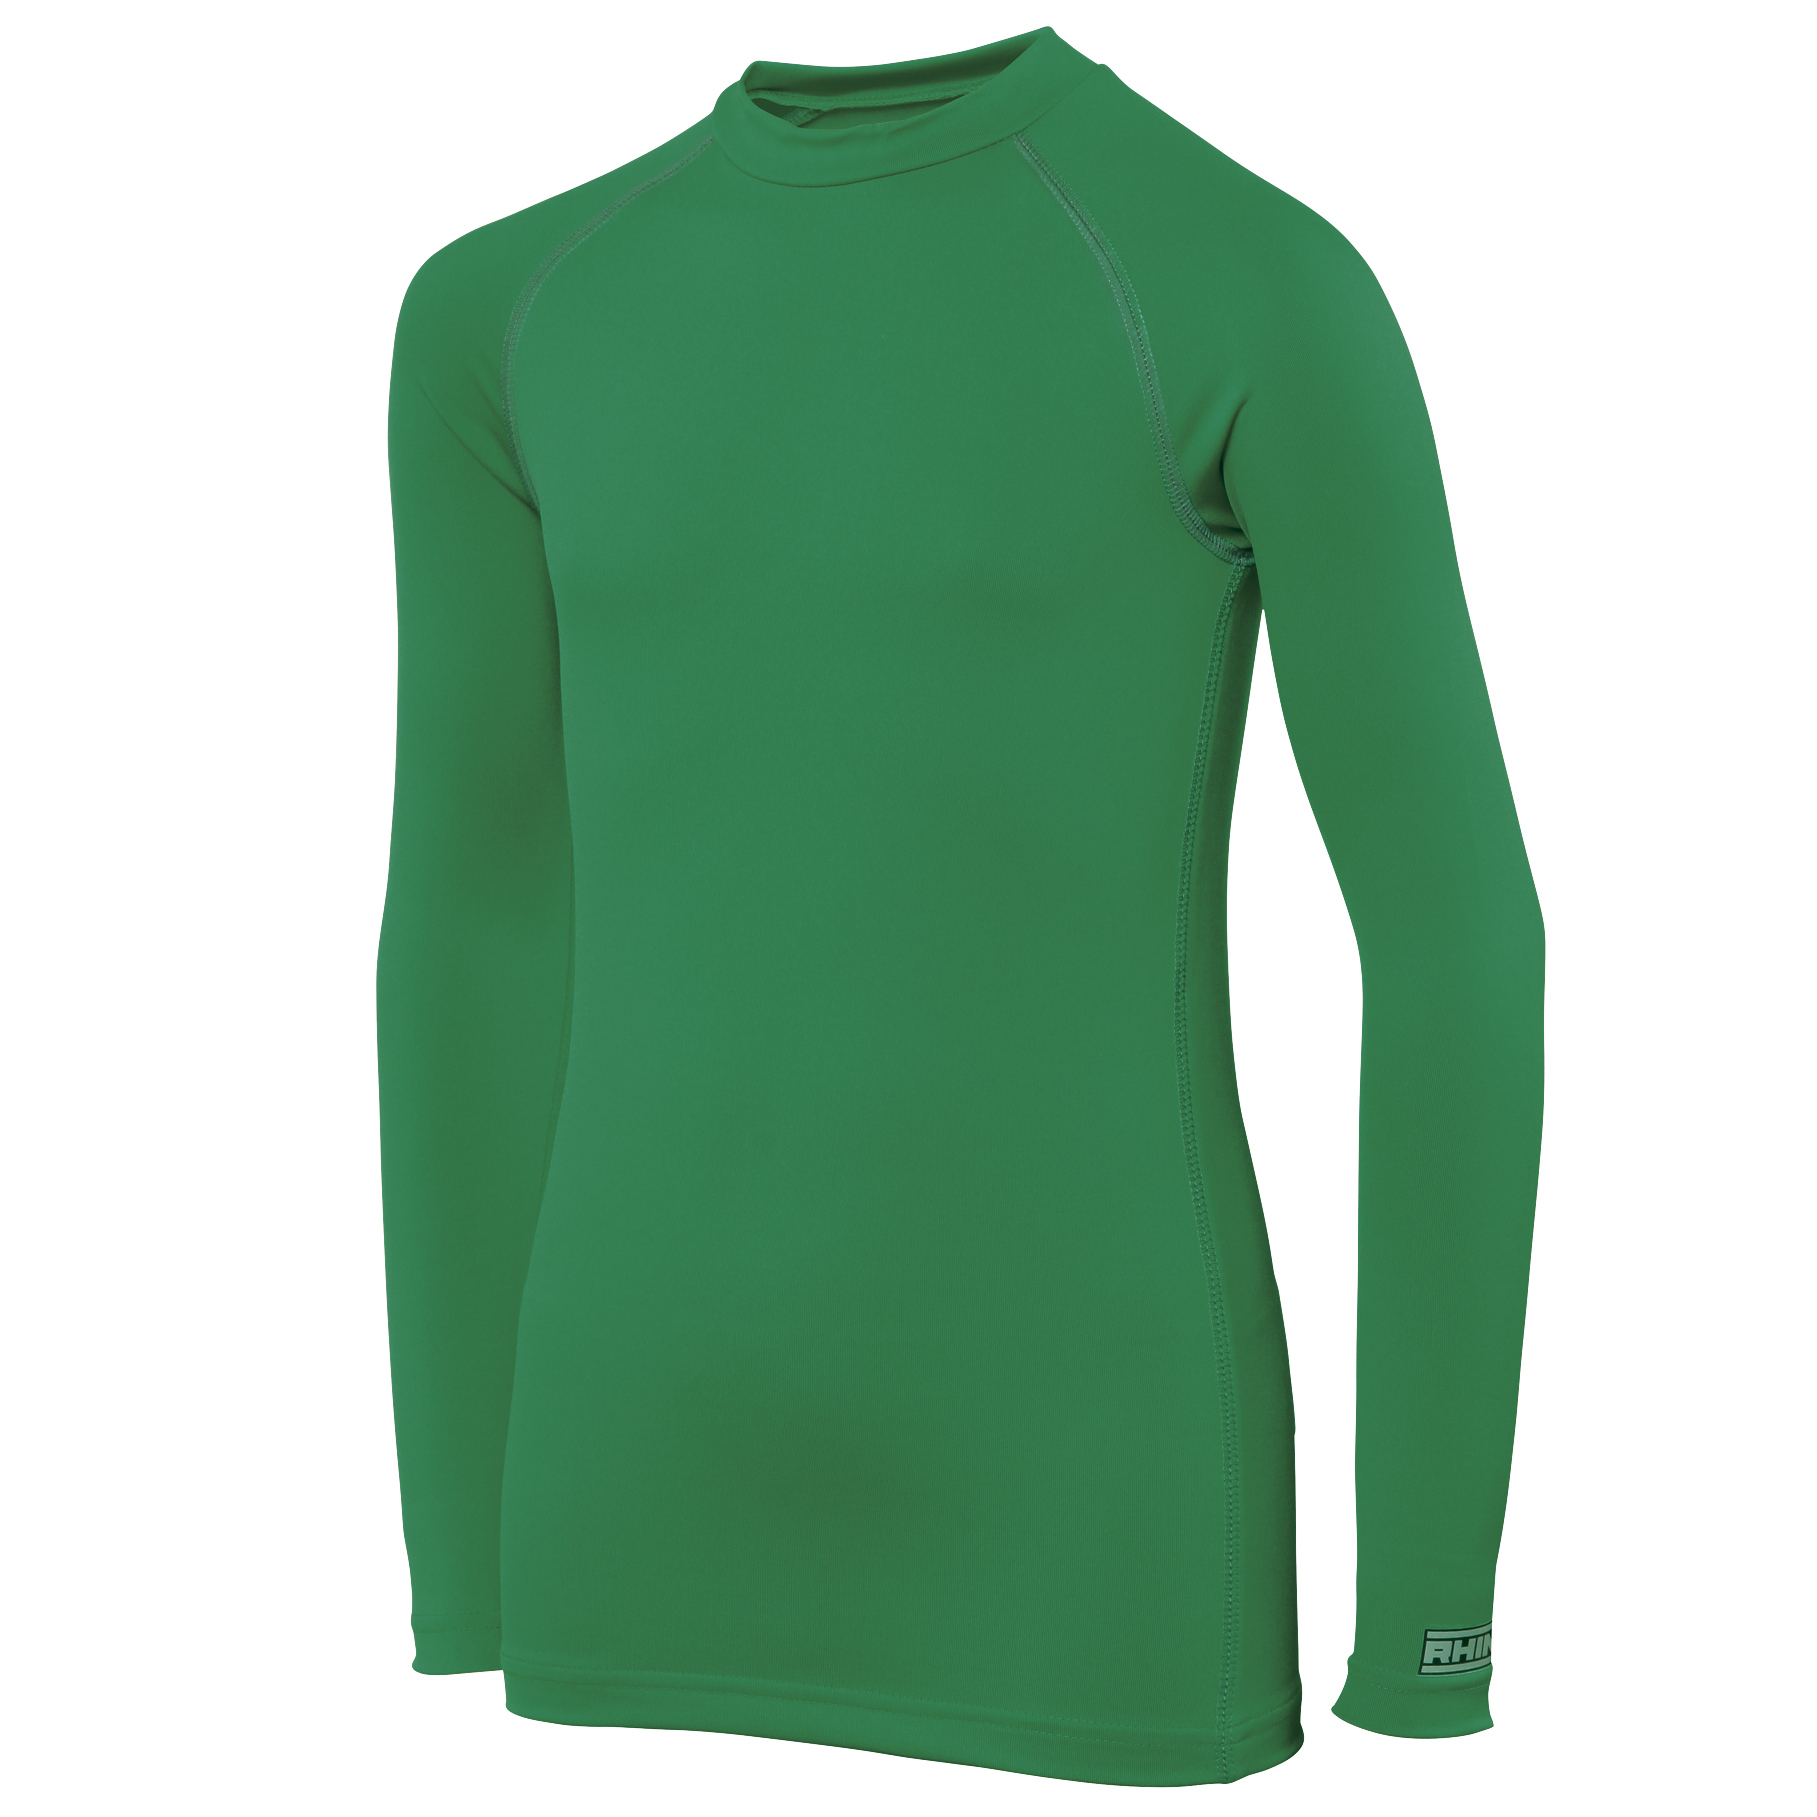 Rhino Childrens Boys Long Sleeve Thermal Underwear Base Layer Vest Top (SY-MY) (Green)